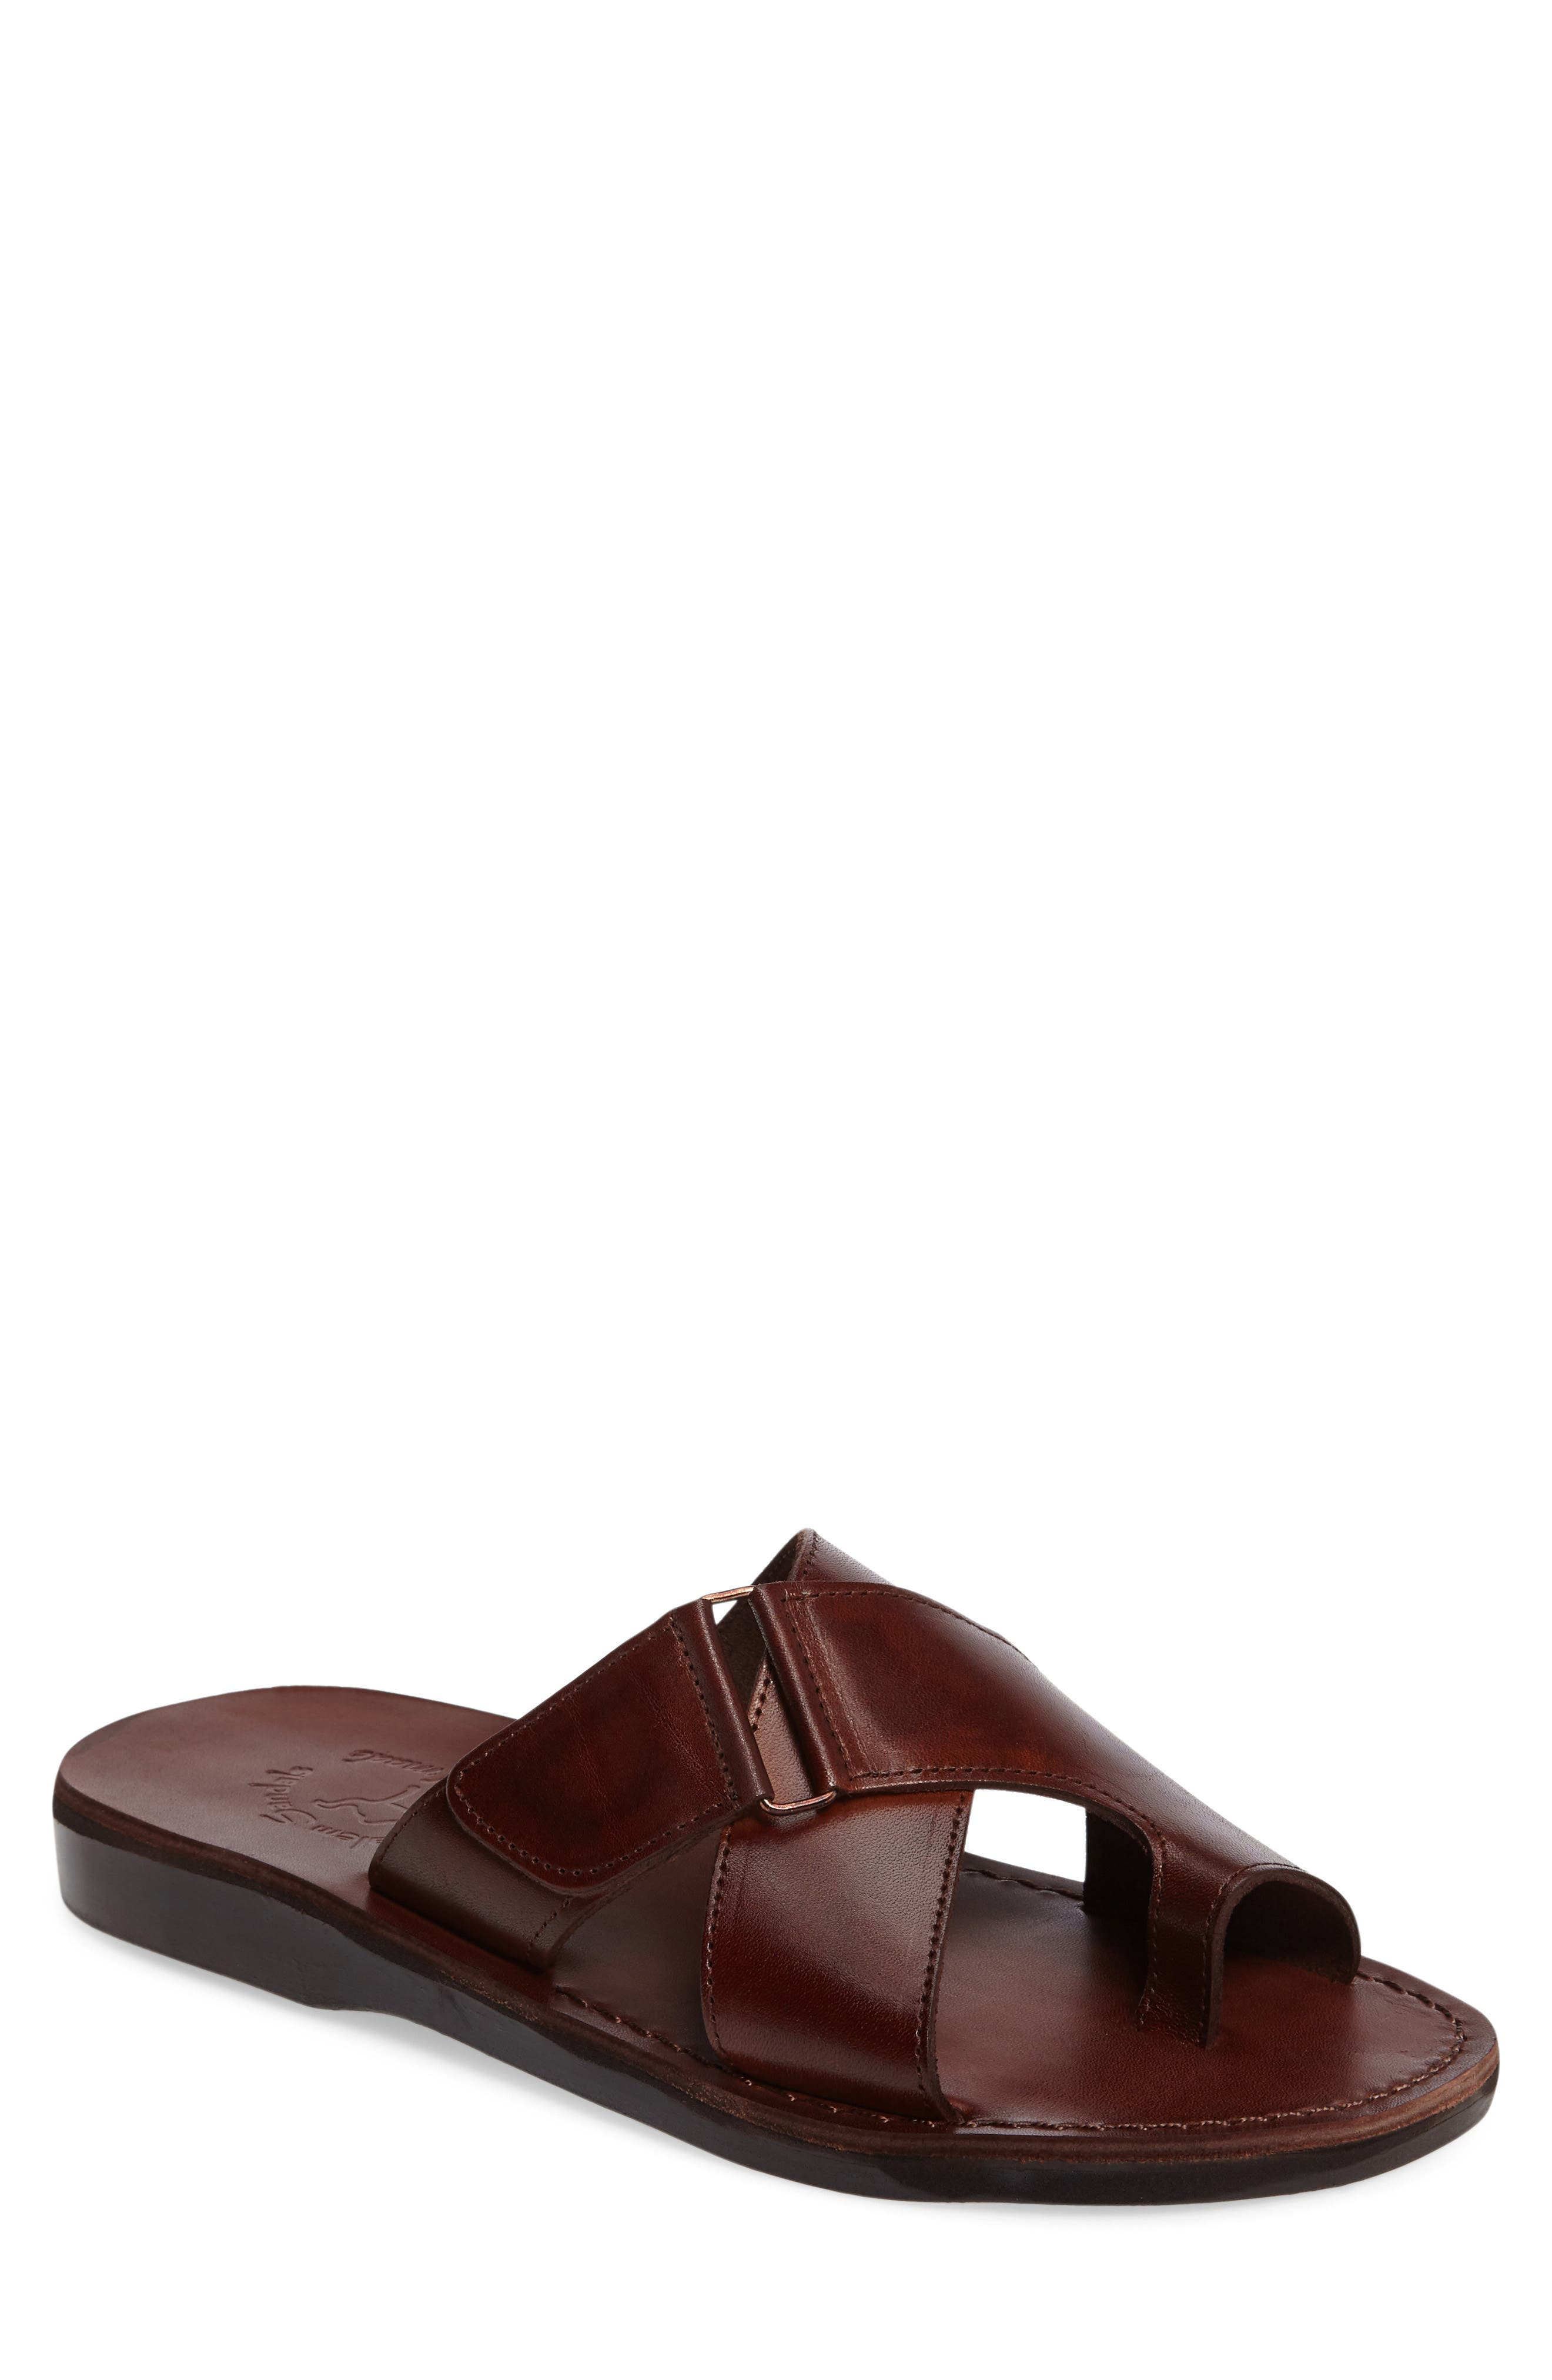 Asher Slide Sandal,                         Main,                         color, Brown Leather